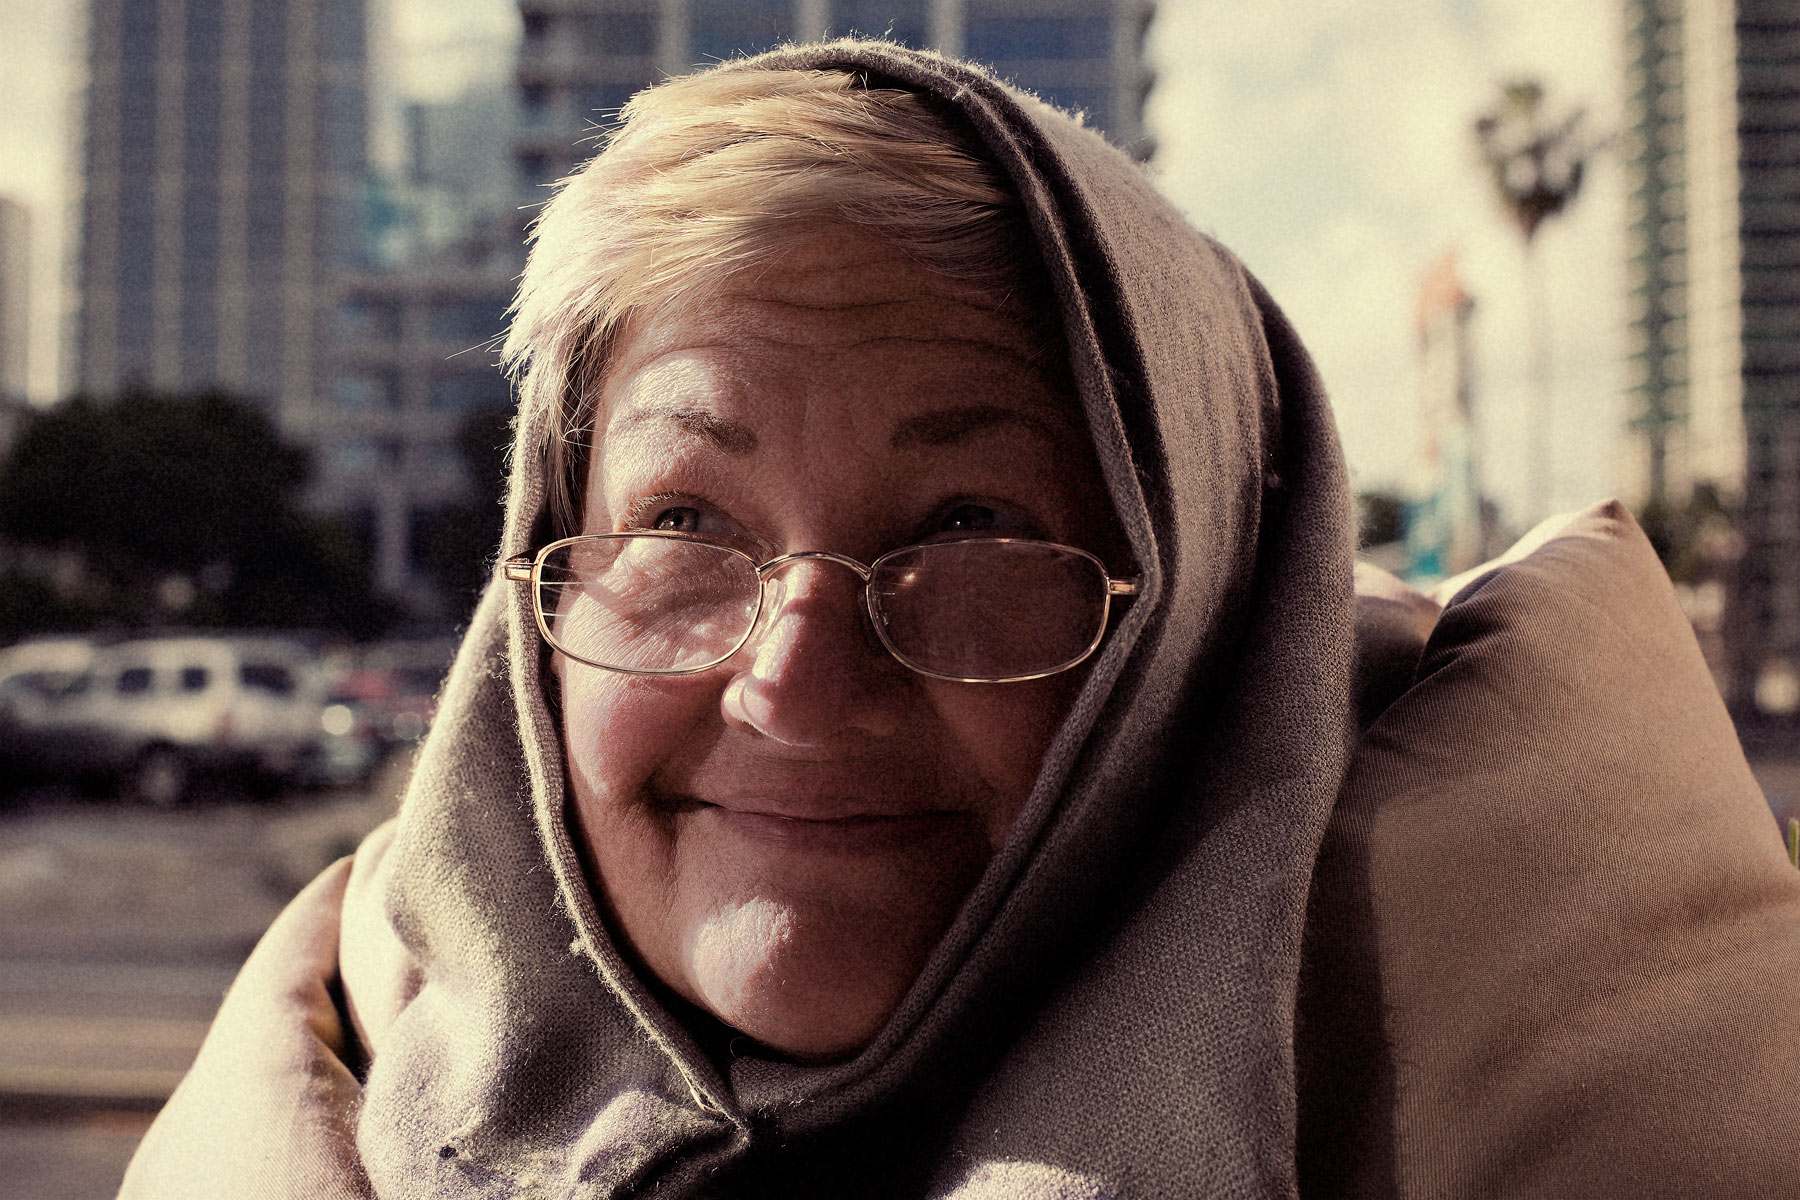 Good Boy Wolf Photographer, filmic portrait, homeless woman wrapped in blankets smiling